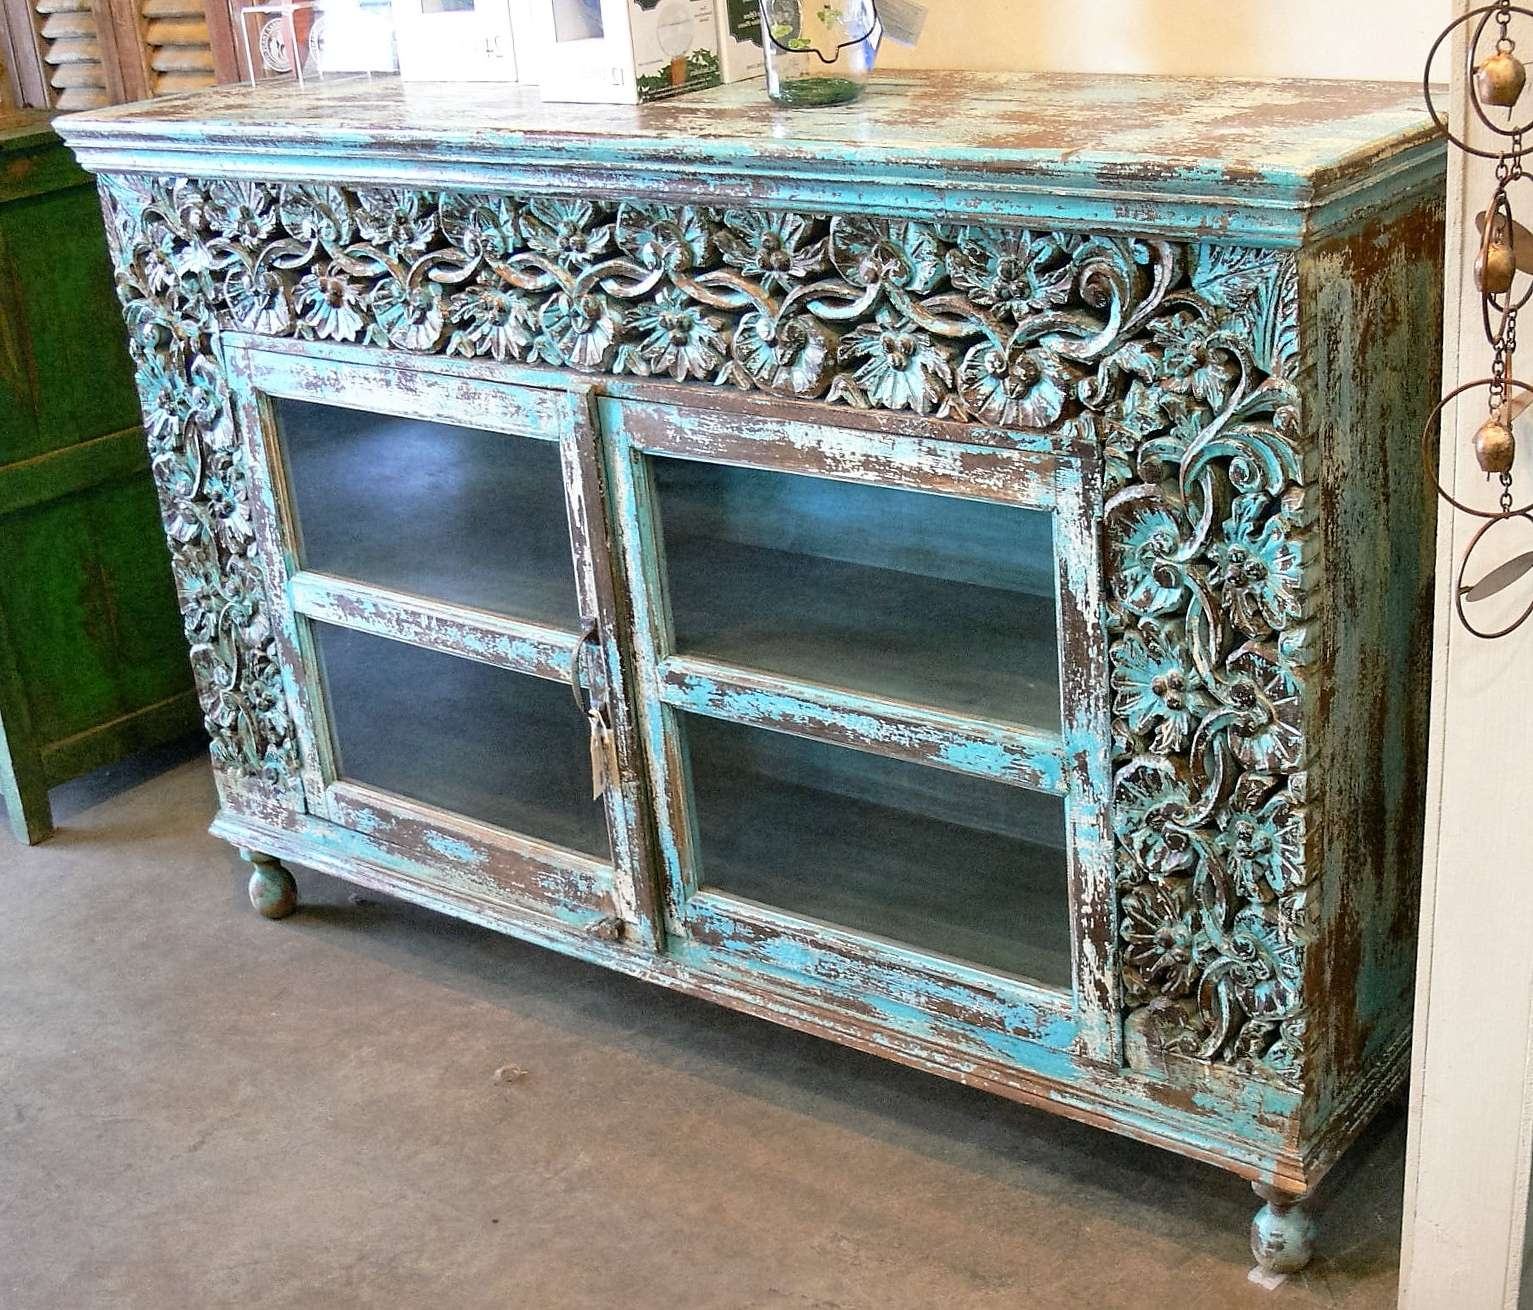 Sideboards & Buffets » Market Imports – Home, Patio, Antiques With Turquoise Sideboards (View 10 of 20)